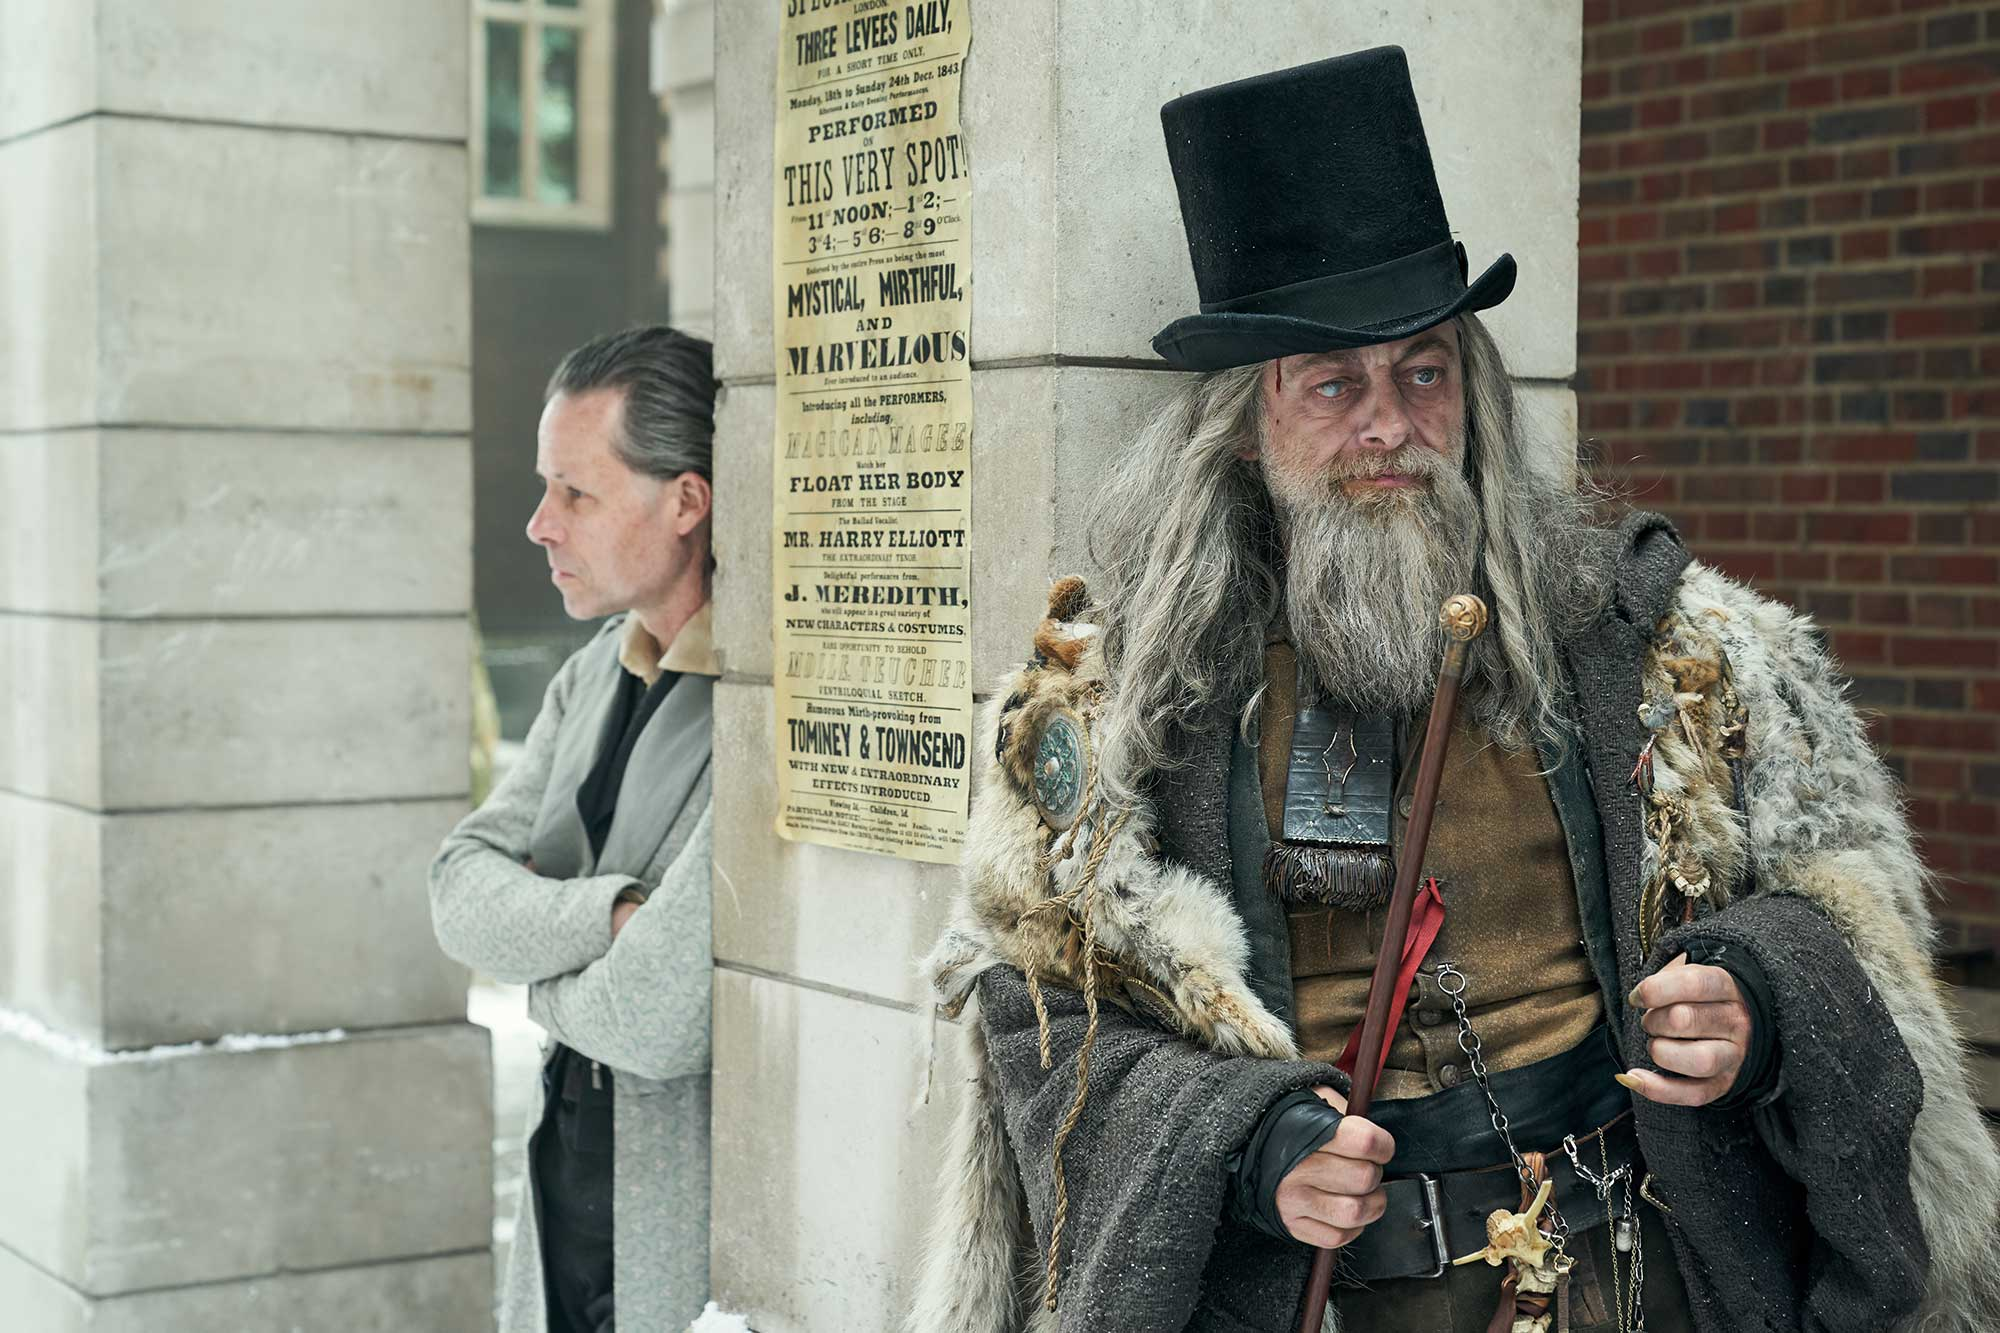 'A Christmas Carol': Guy Pearce Says FX Film Takes 'a Darker Sort of Path' - Channel Guide Magazine